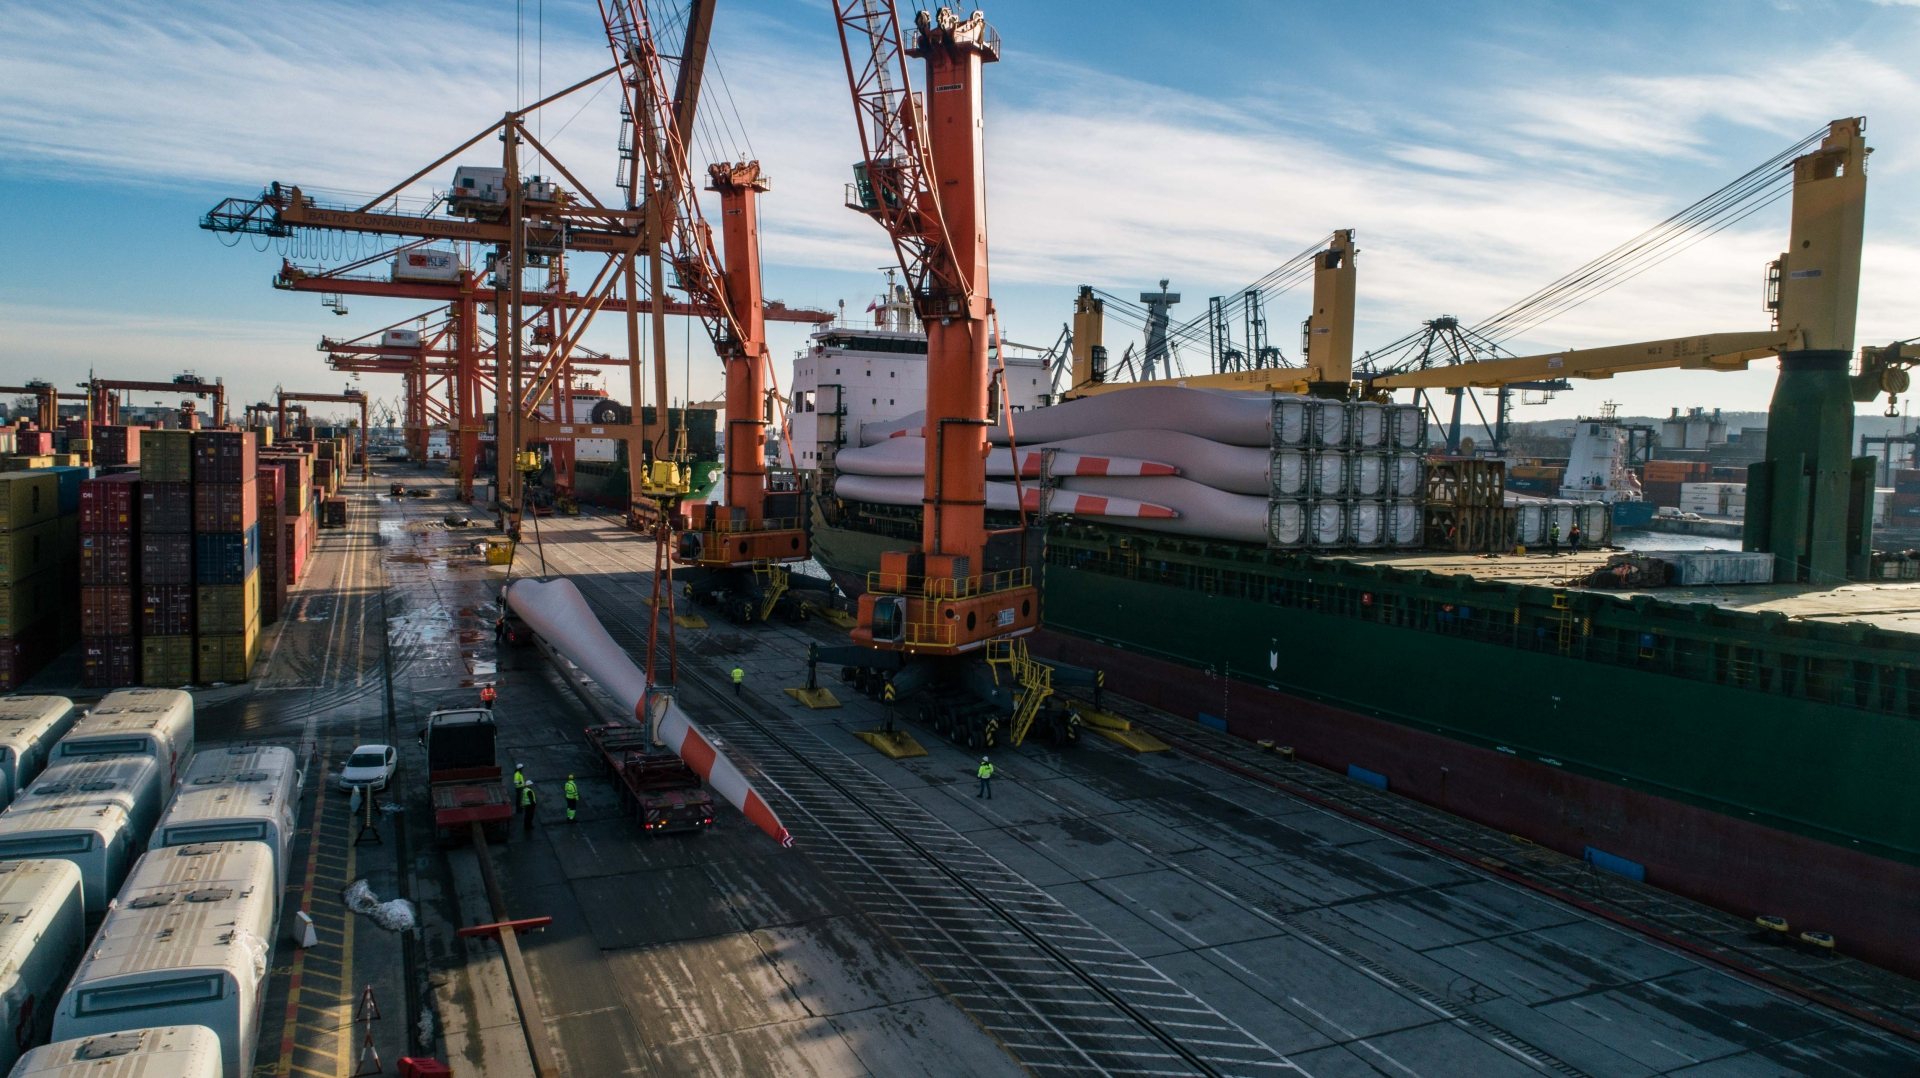 The Port of Gdynia is becoming a hub for wind turbine elements [photo, video]